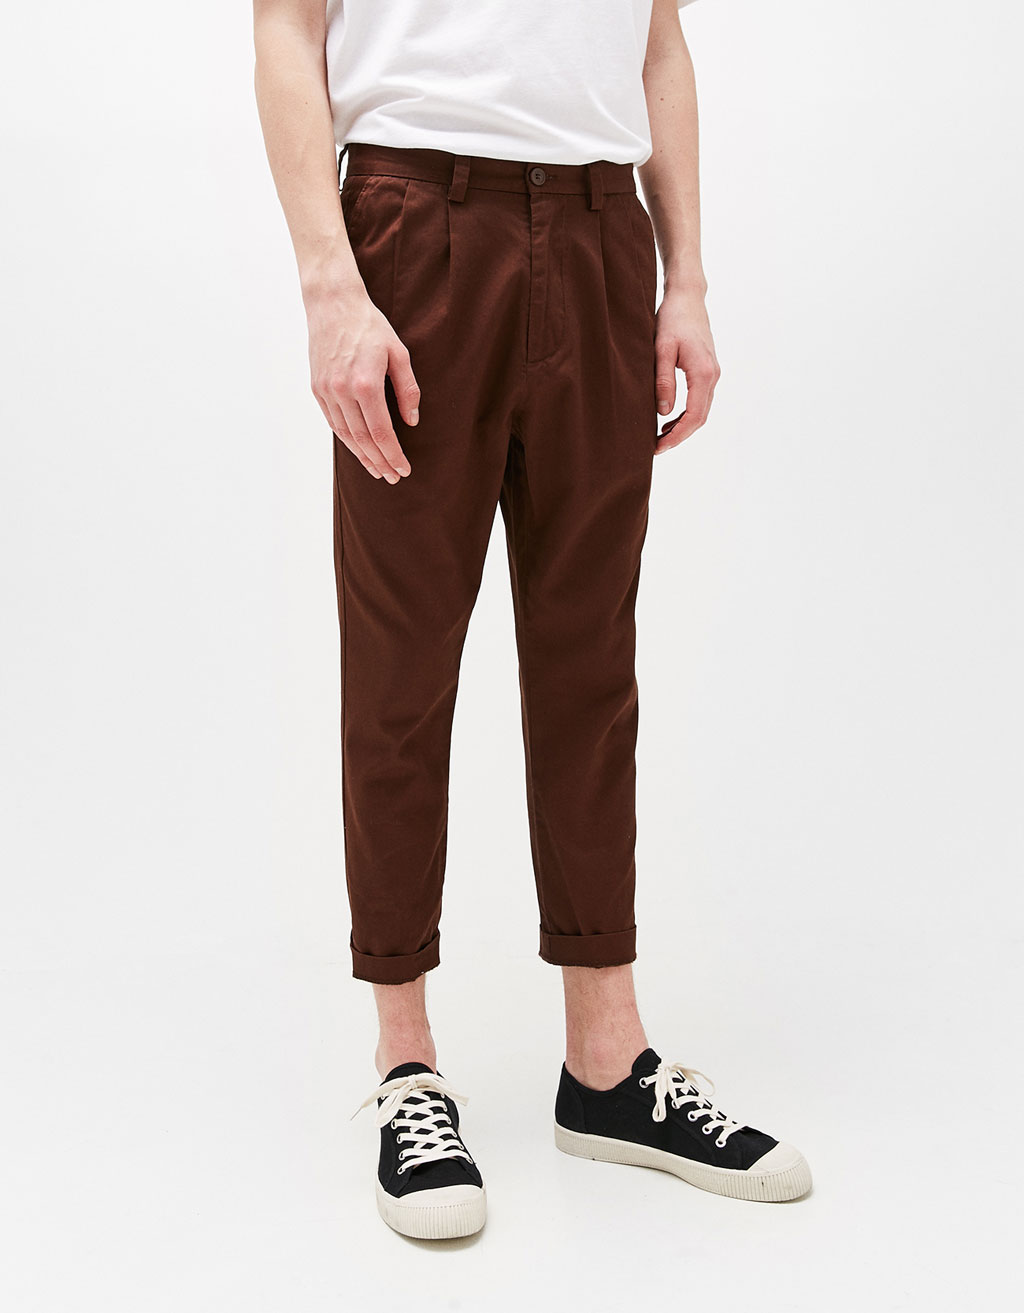 Tailor fit cotton trousers